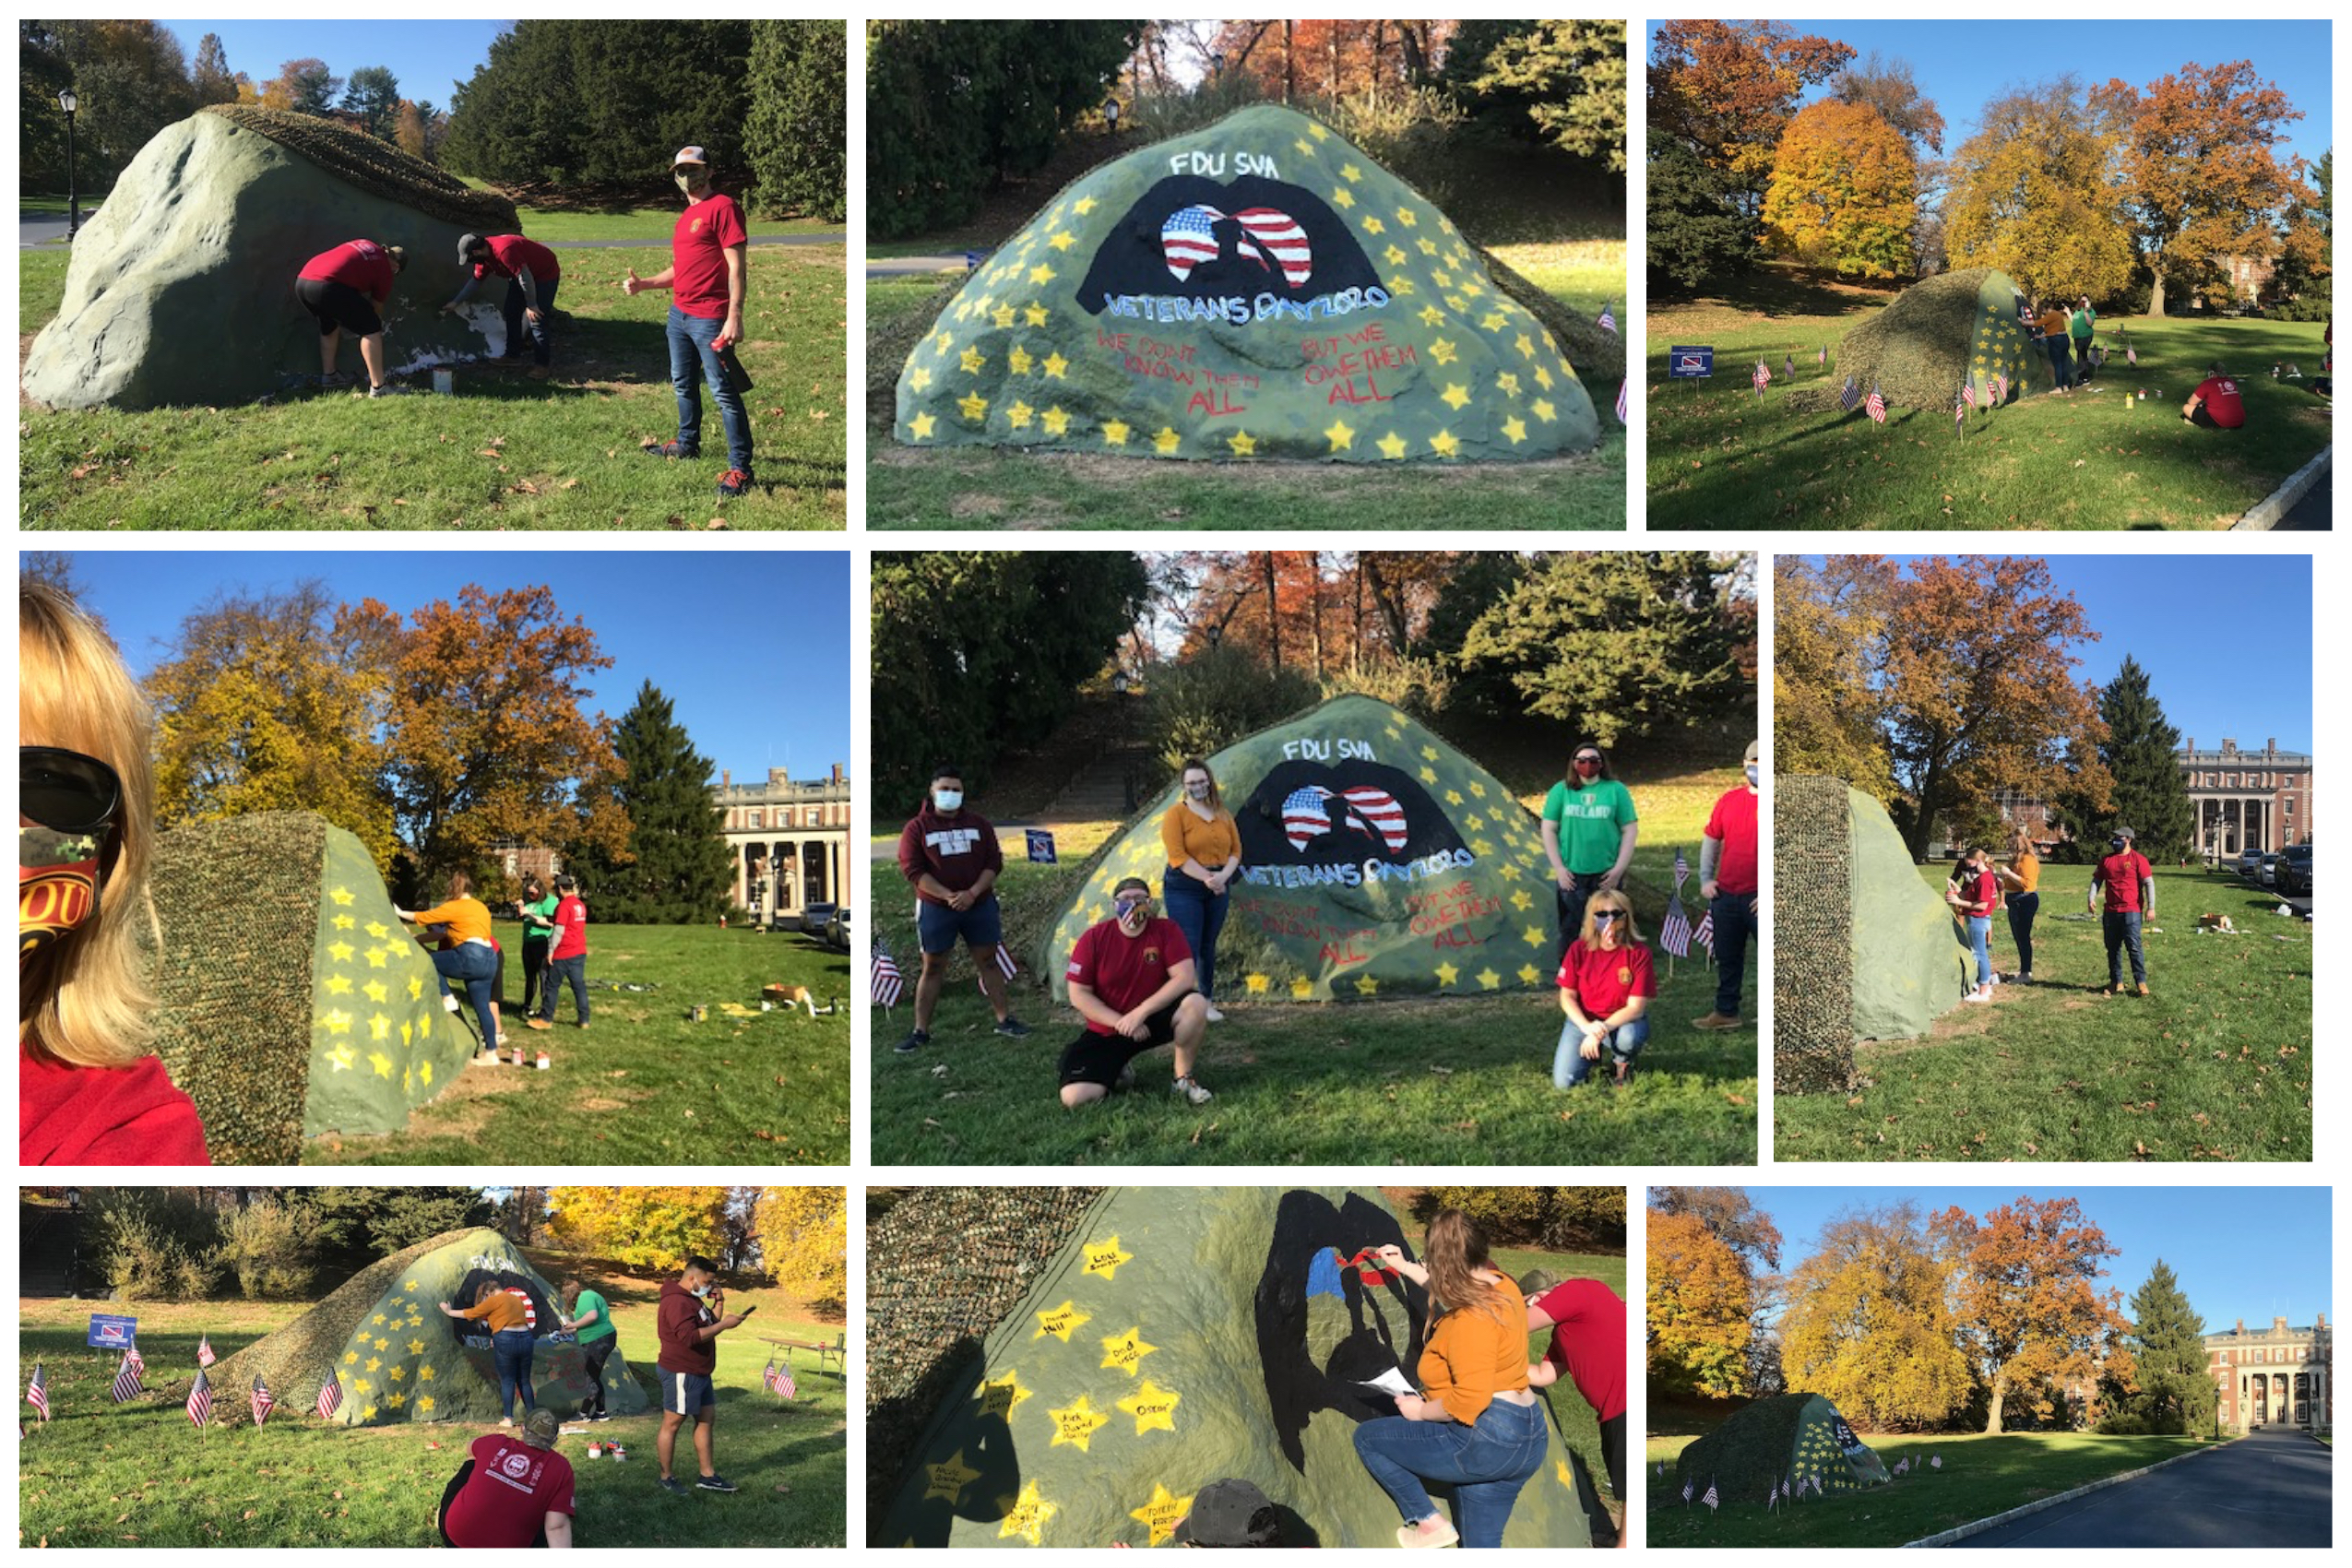 A photo collage feature student veterans painting Reuter's Rock in honor of Veterans Day.